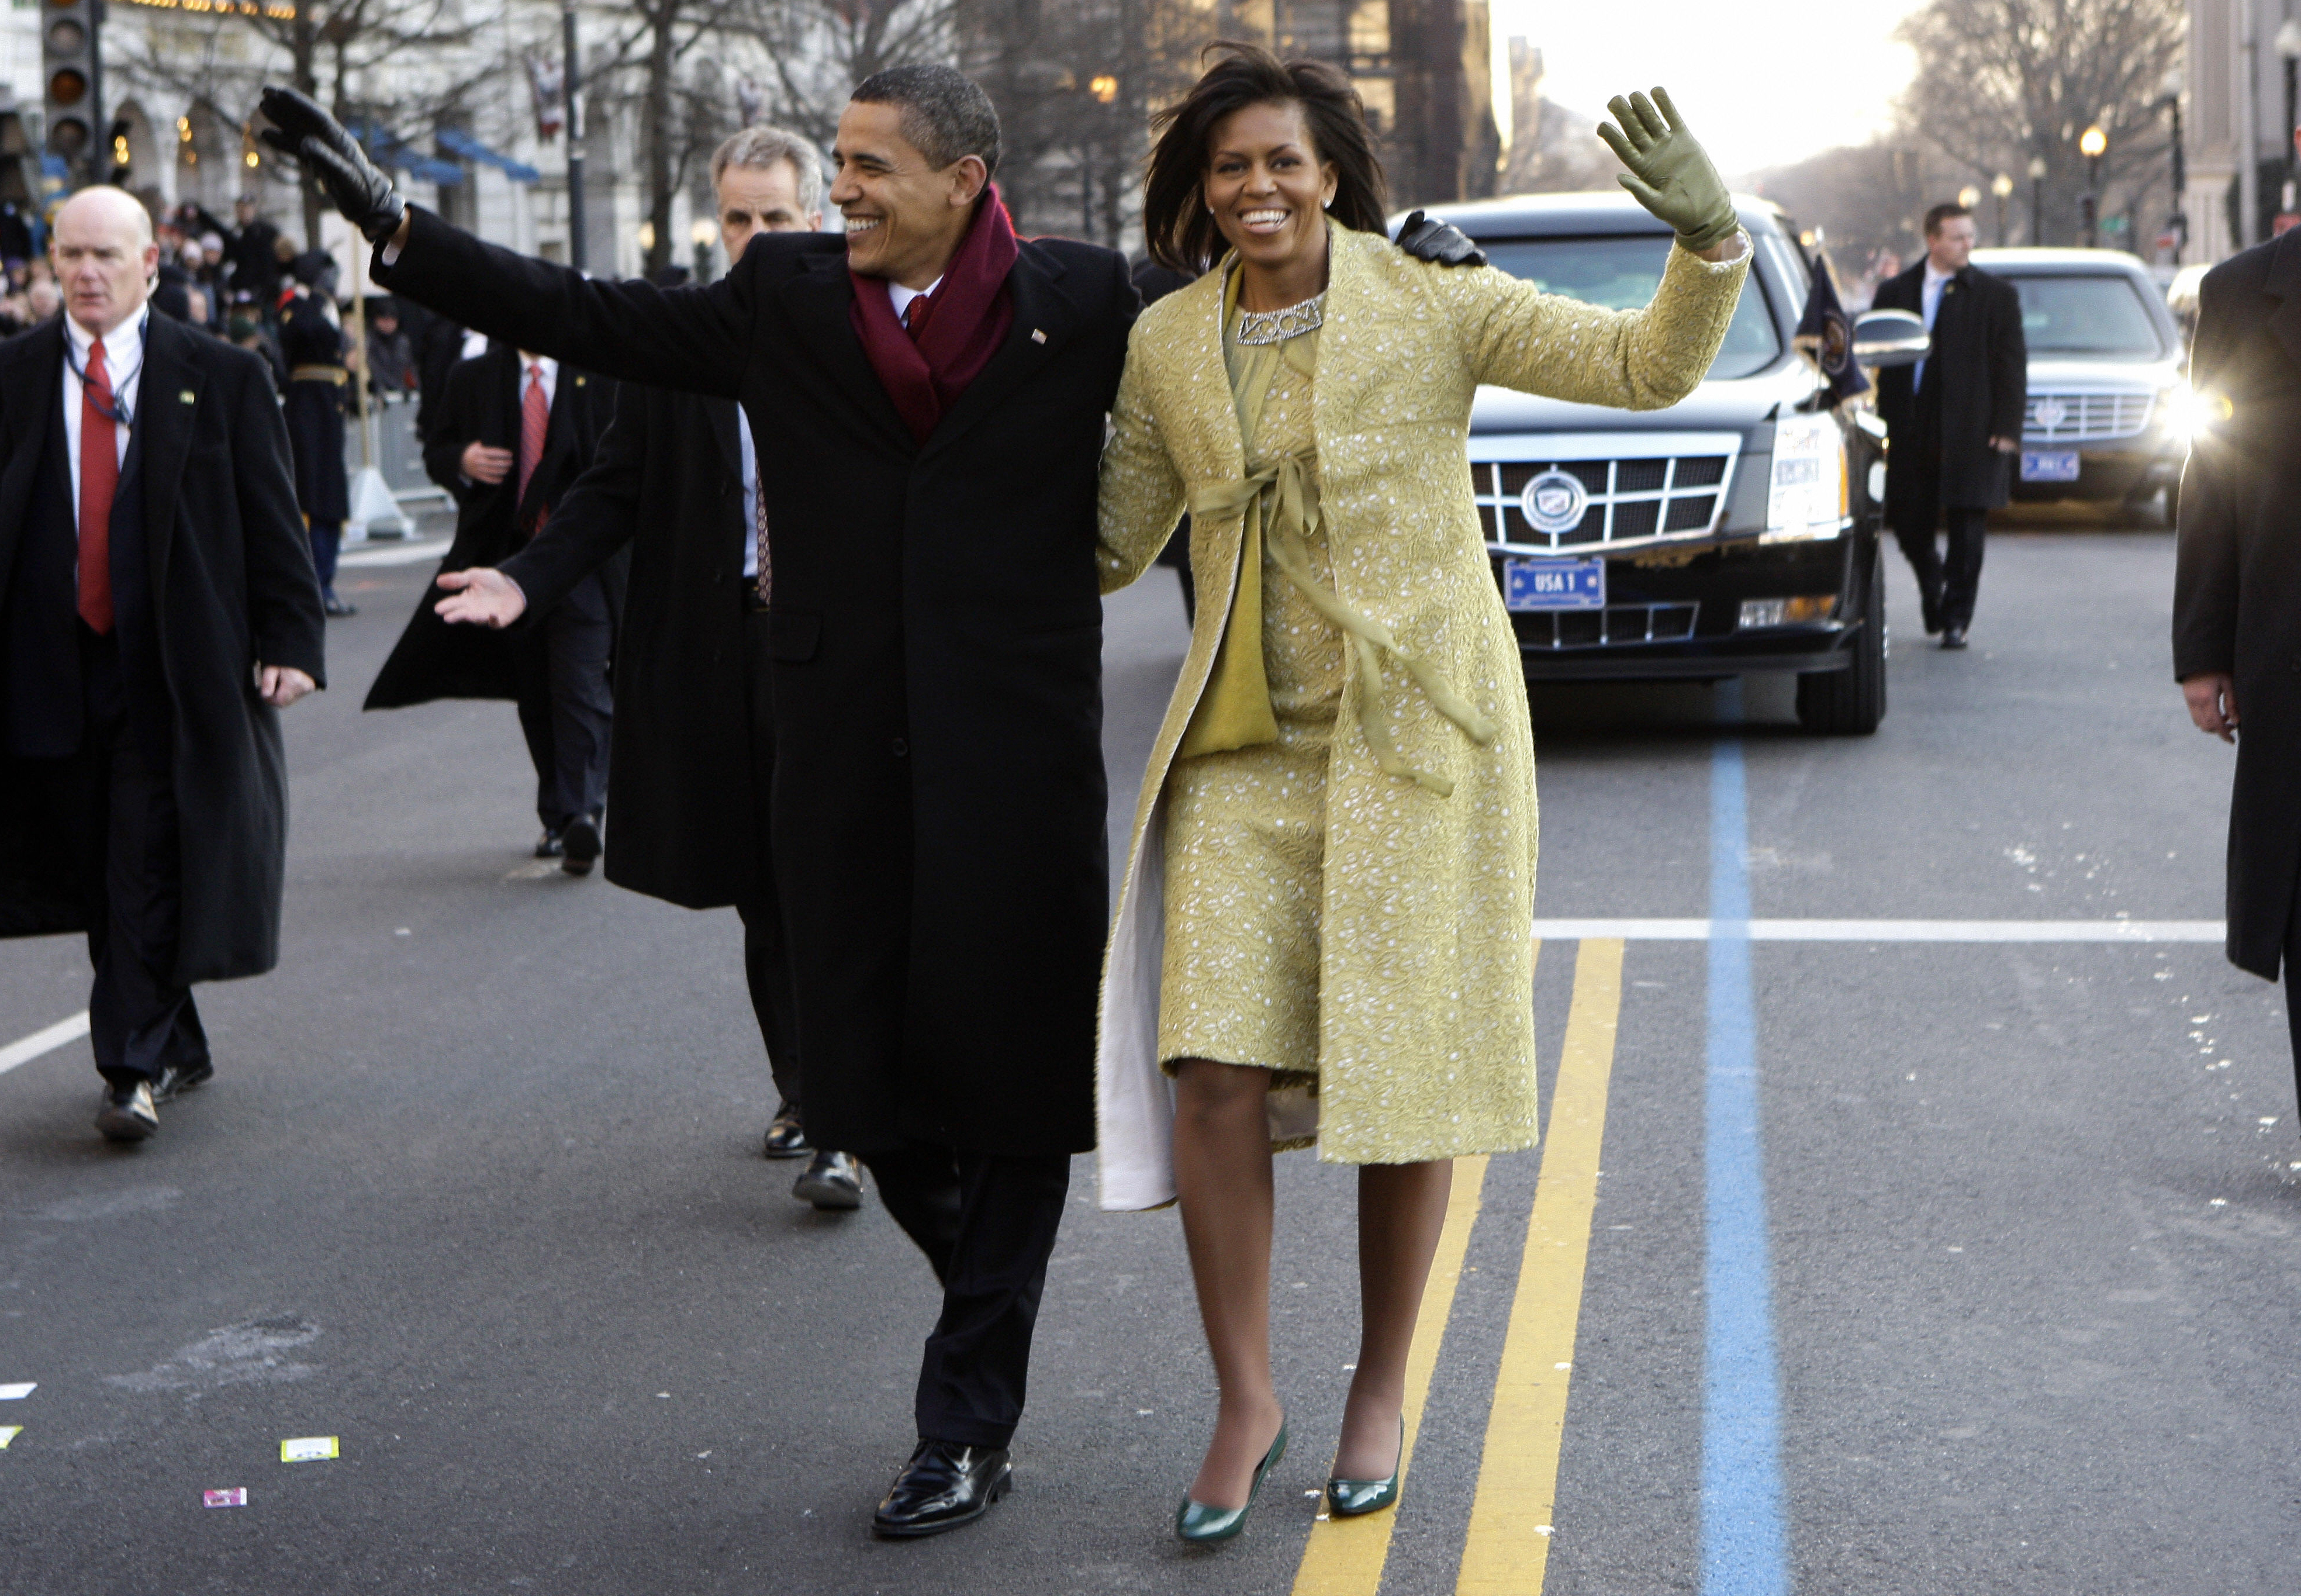 1. Michelle Obama's Inauguration Day Outfit